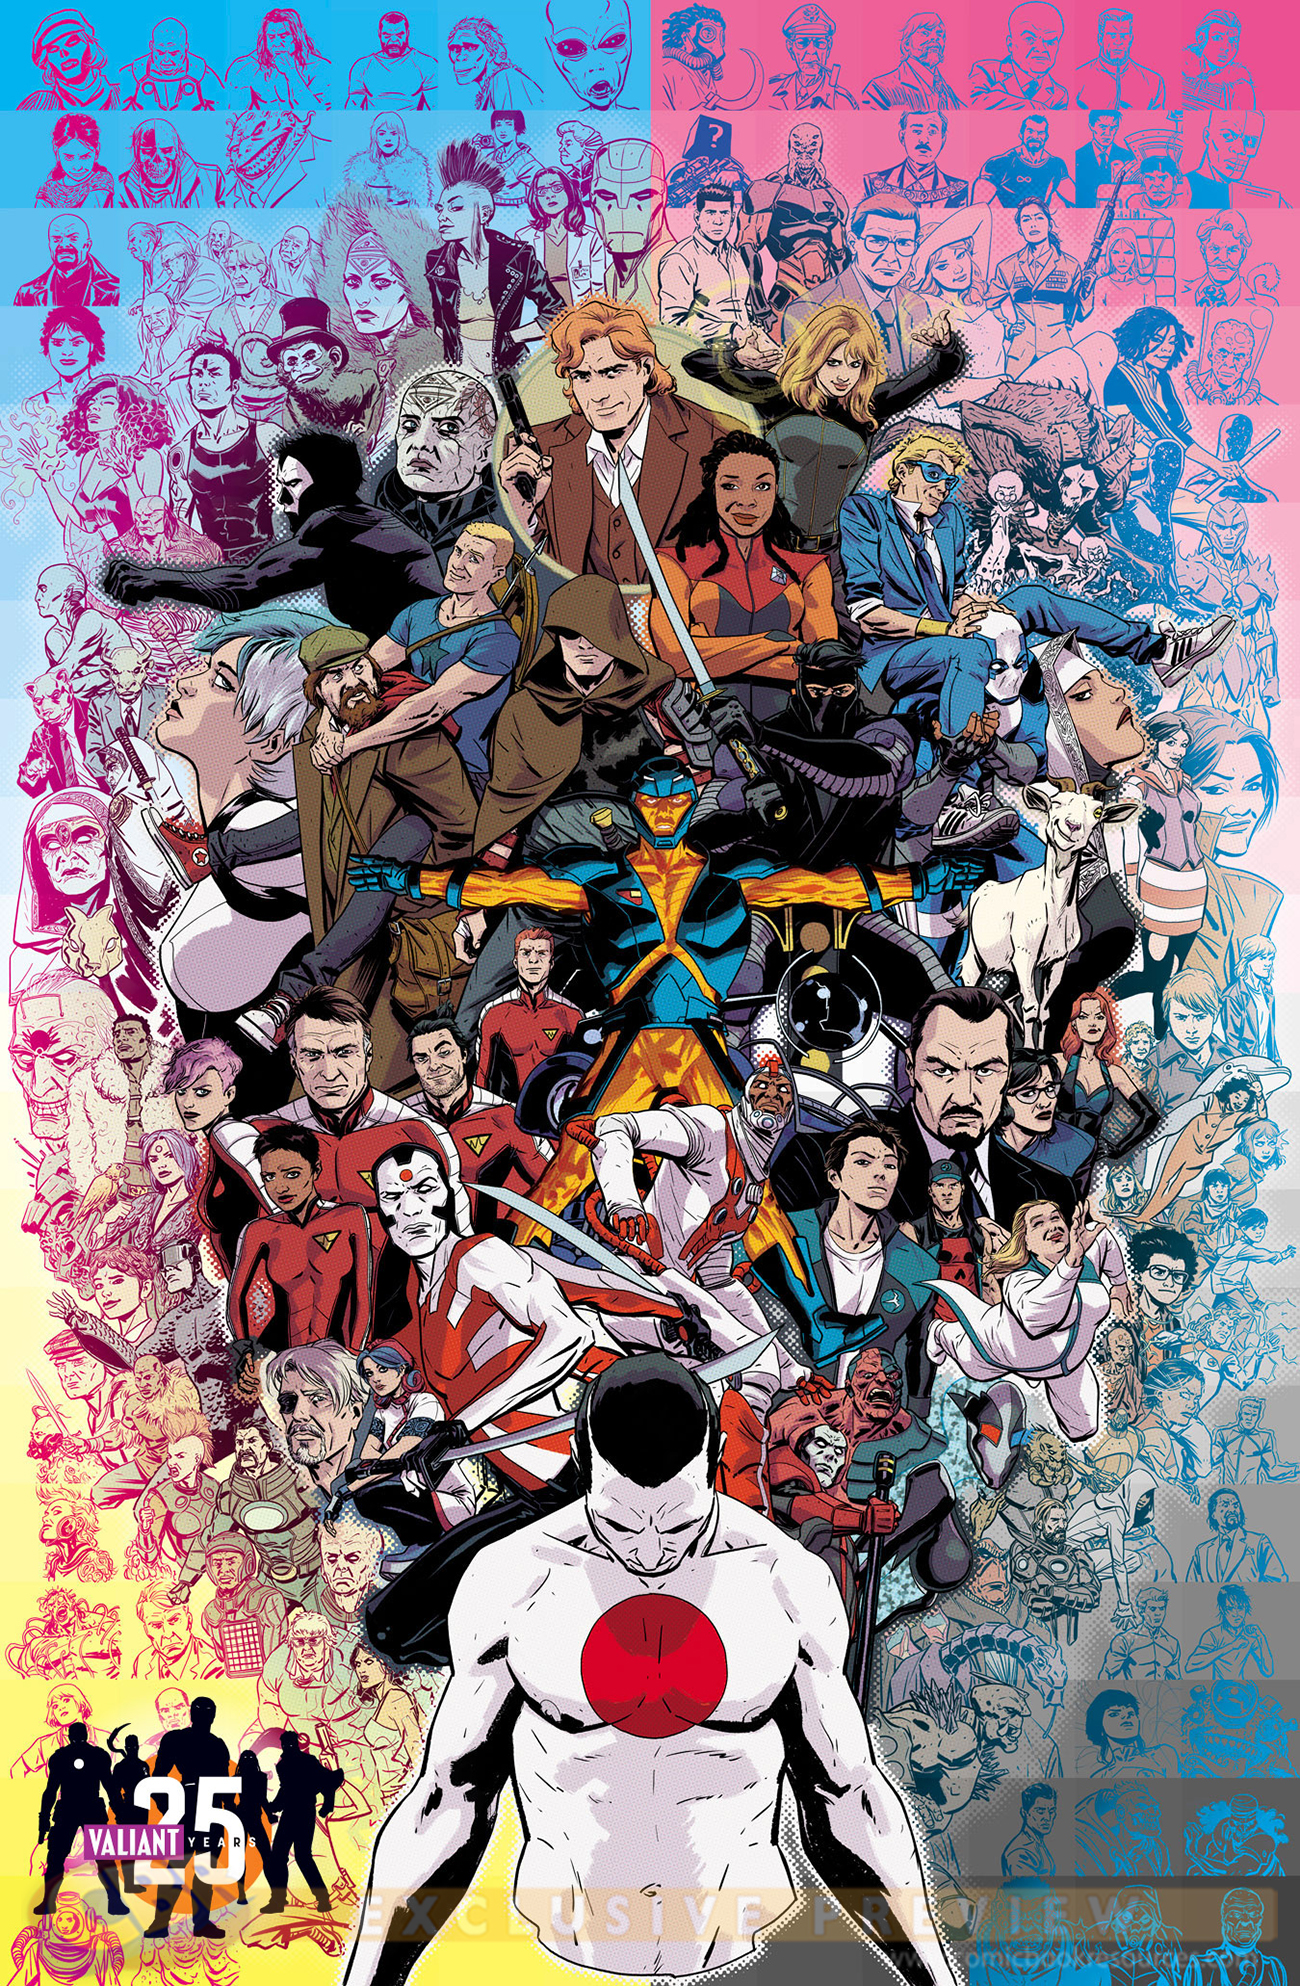 VALIANT-25th-poster